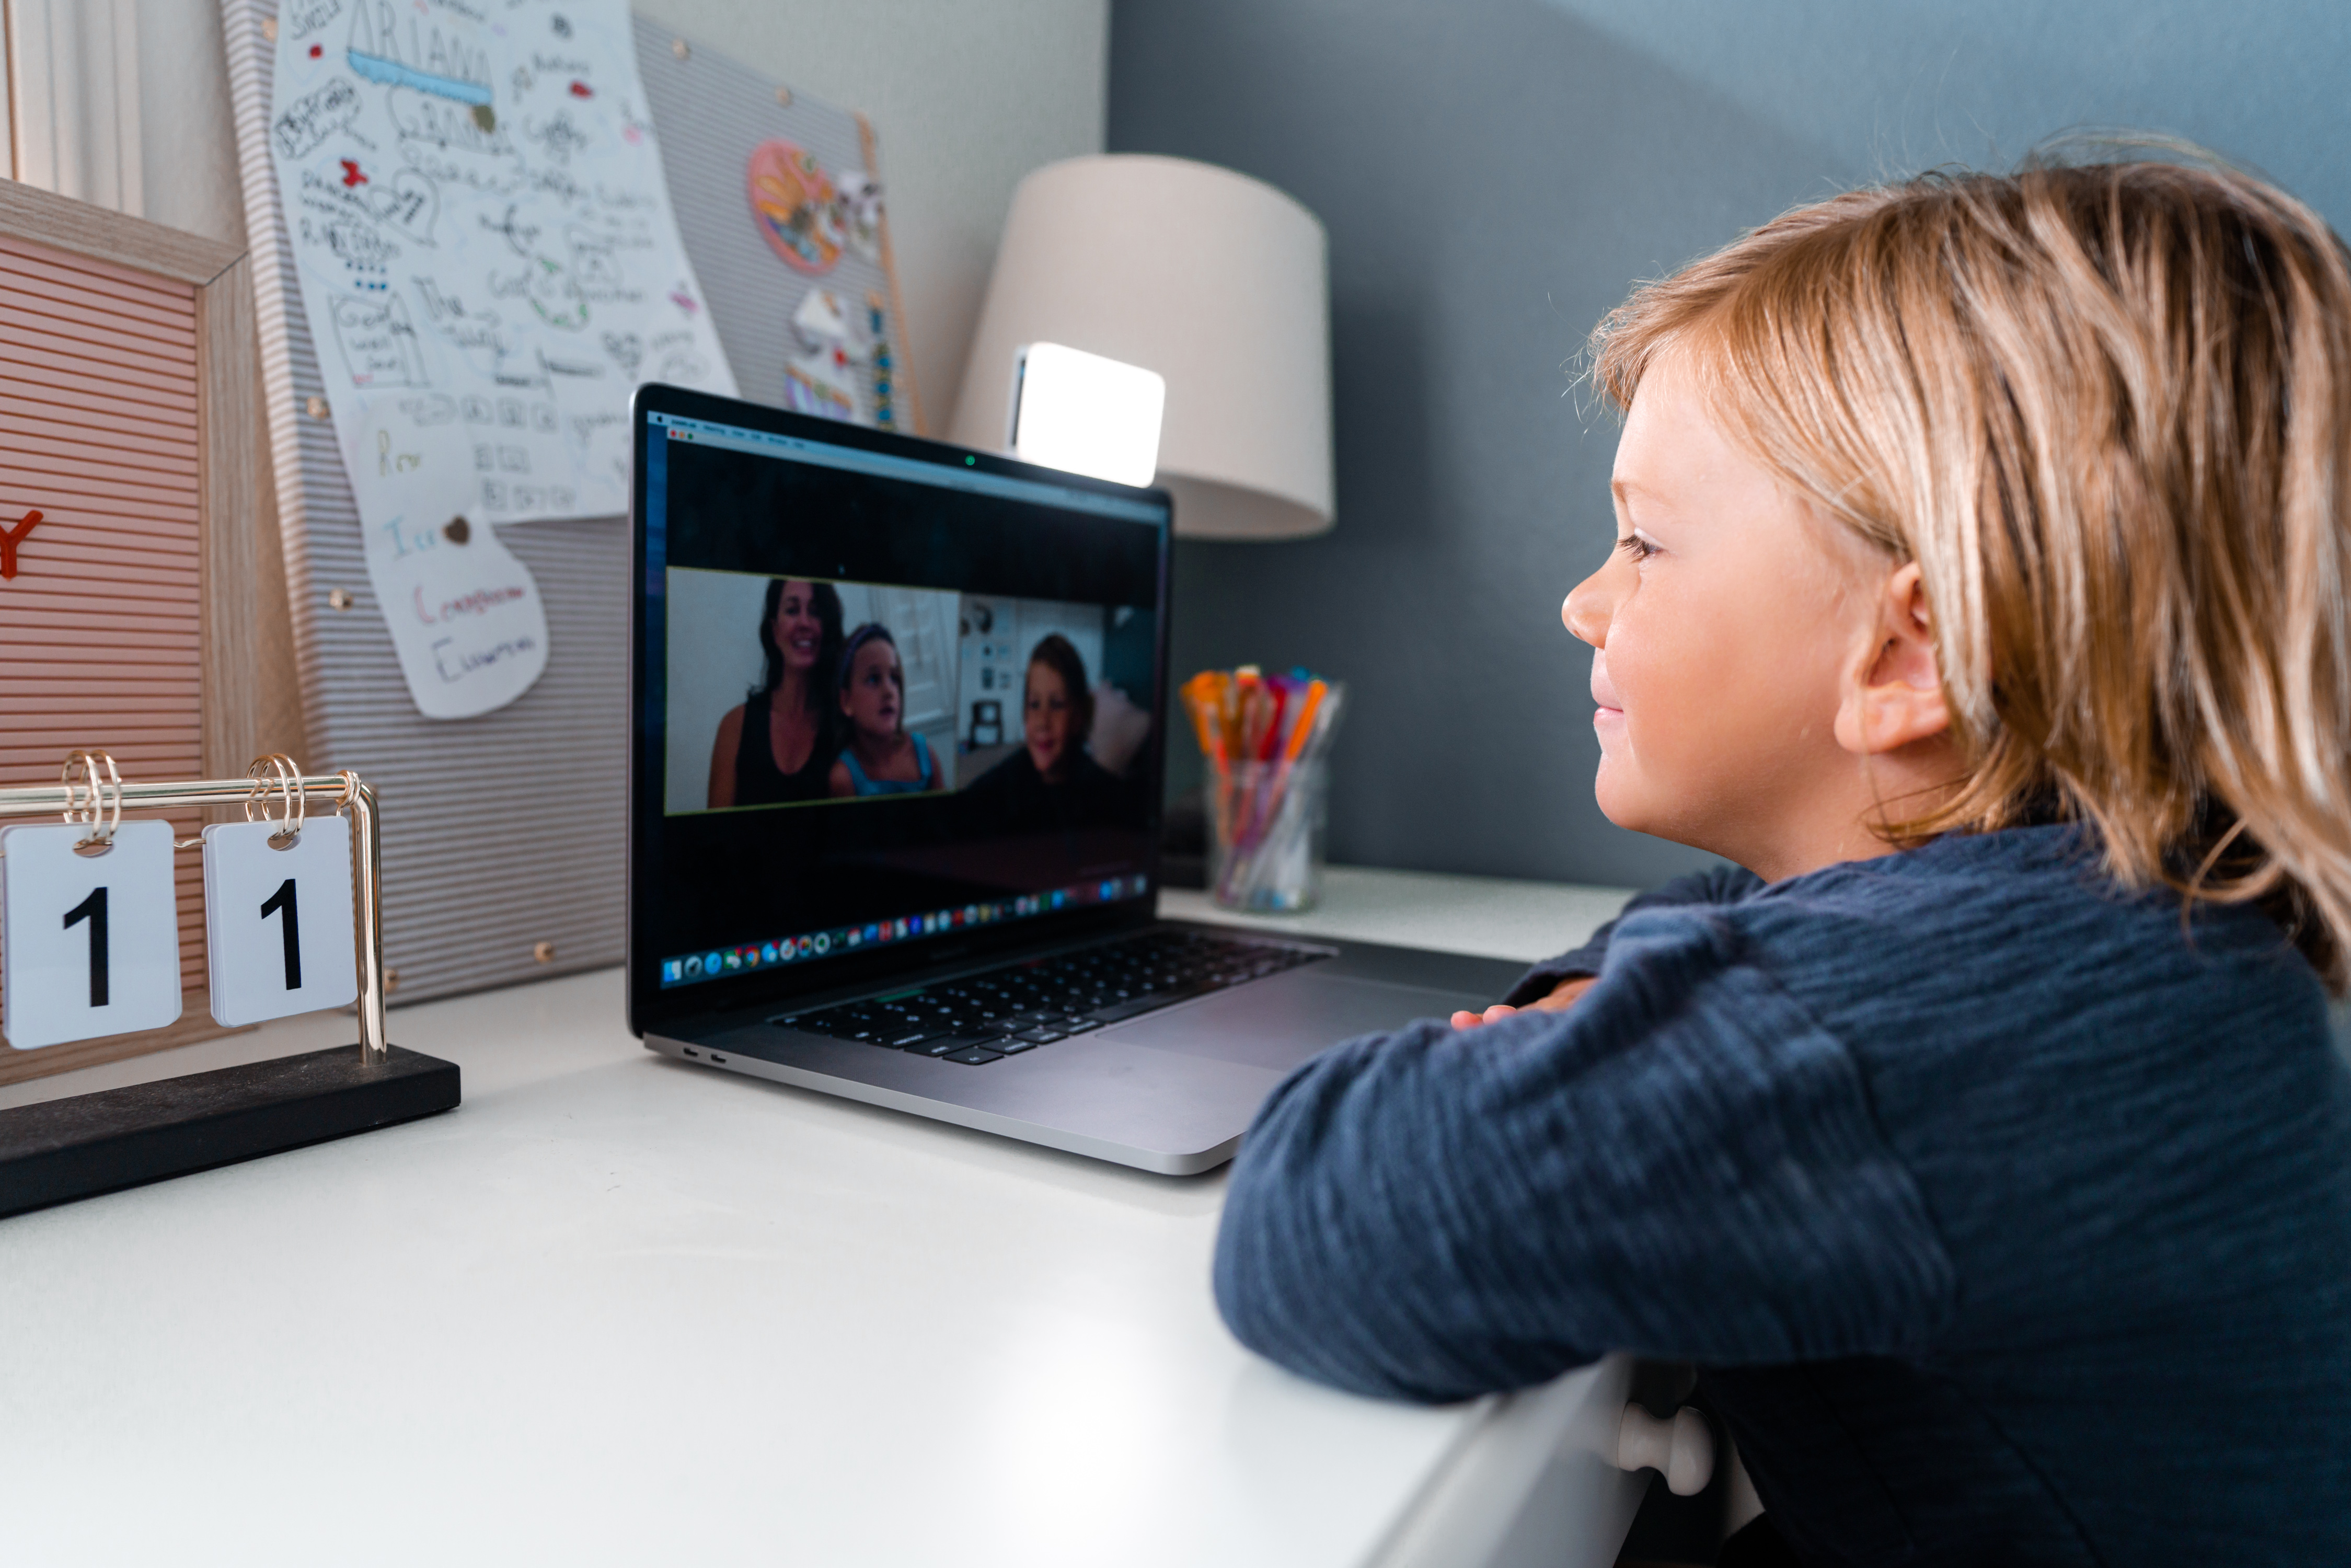 child attending school class on zoom video meeting